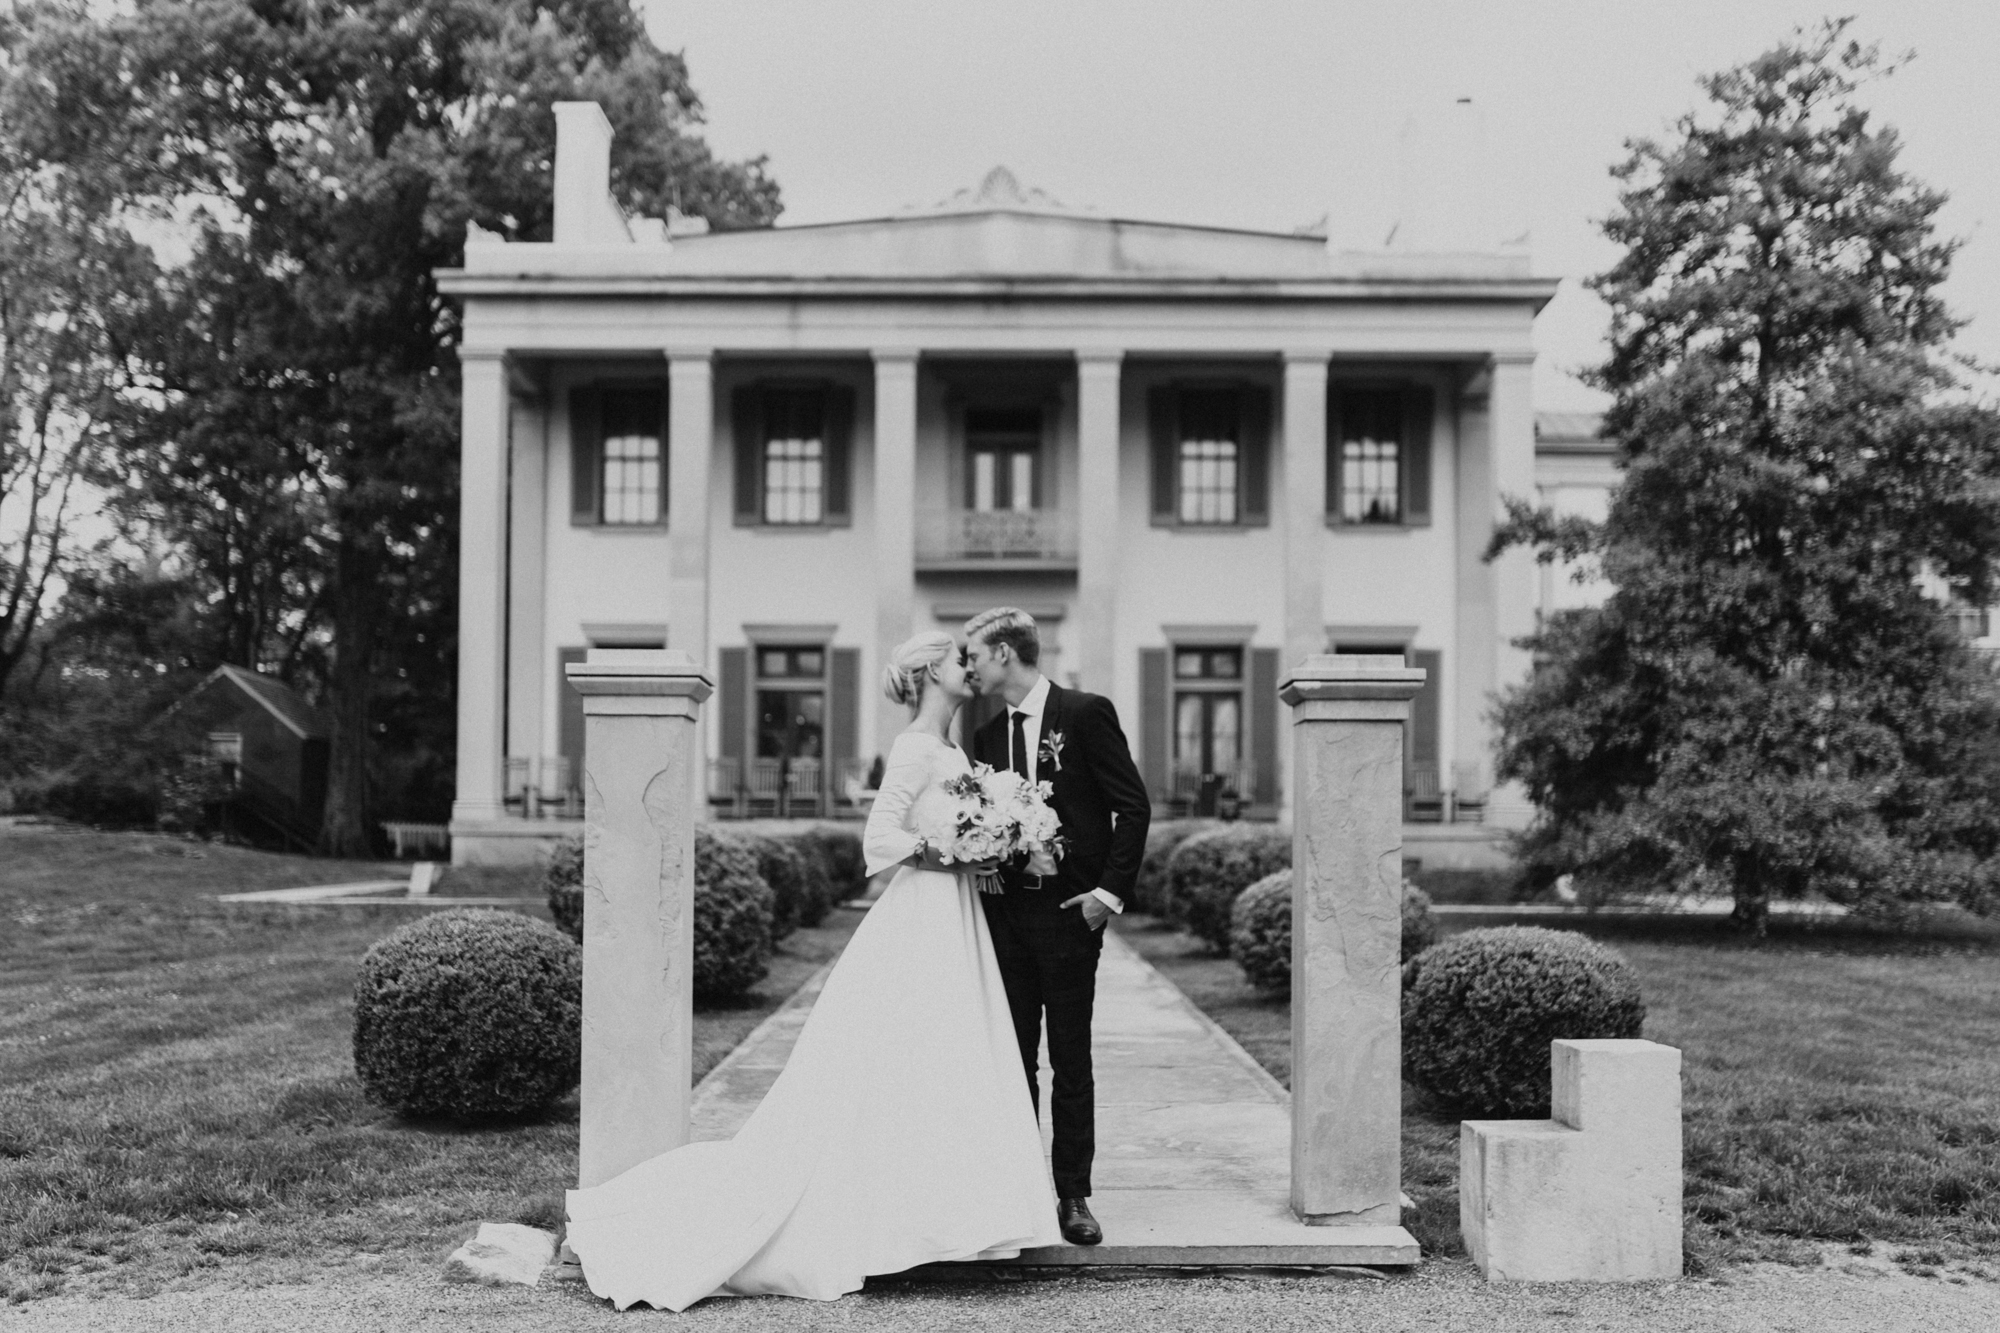 NashvilleTN_BelleMeadePlantation_Springtime_Wedding_MollyPeach-409.jpg